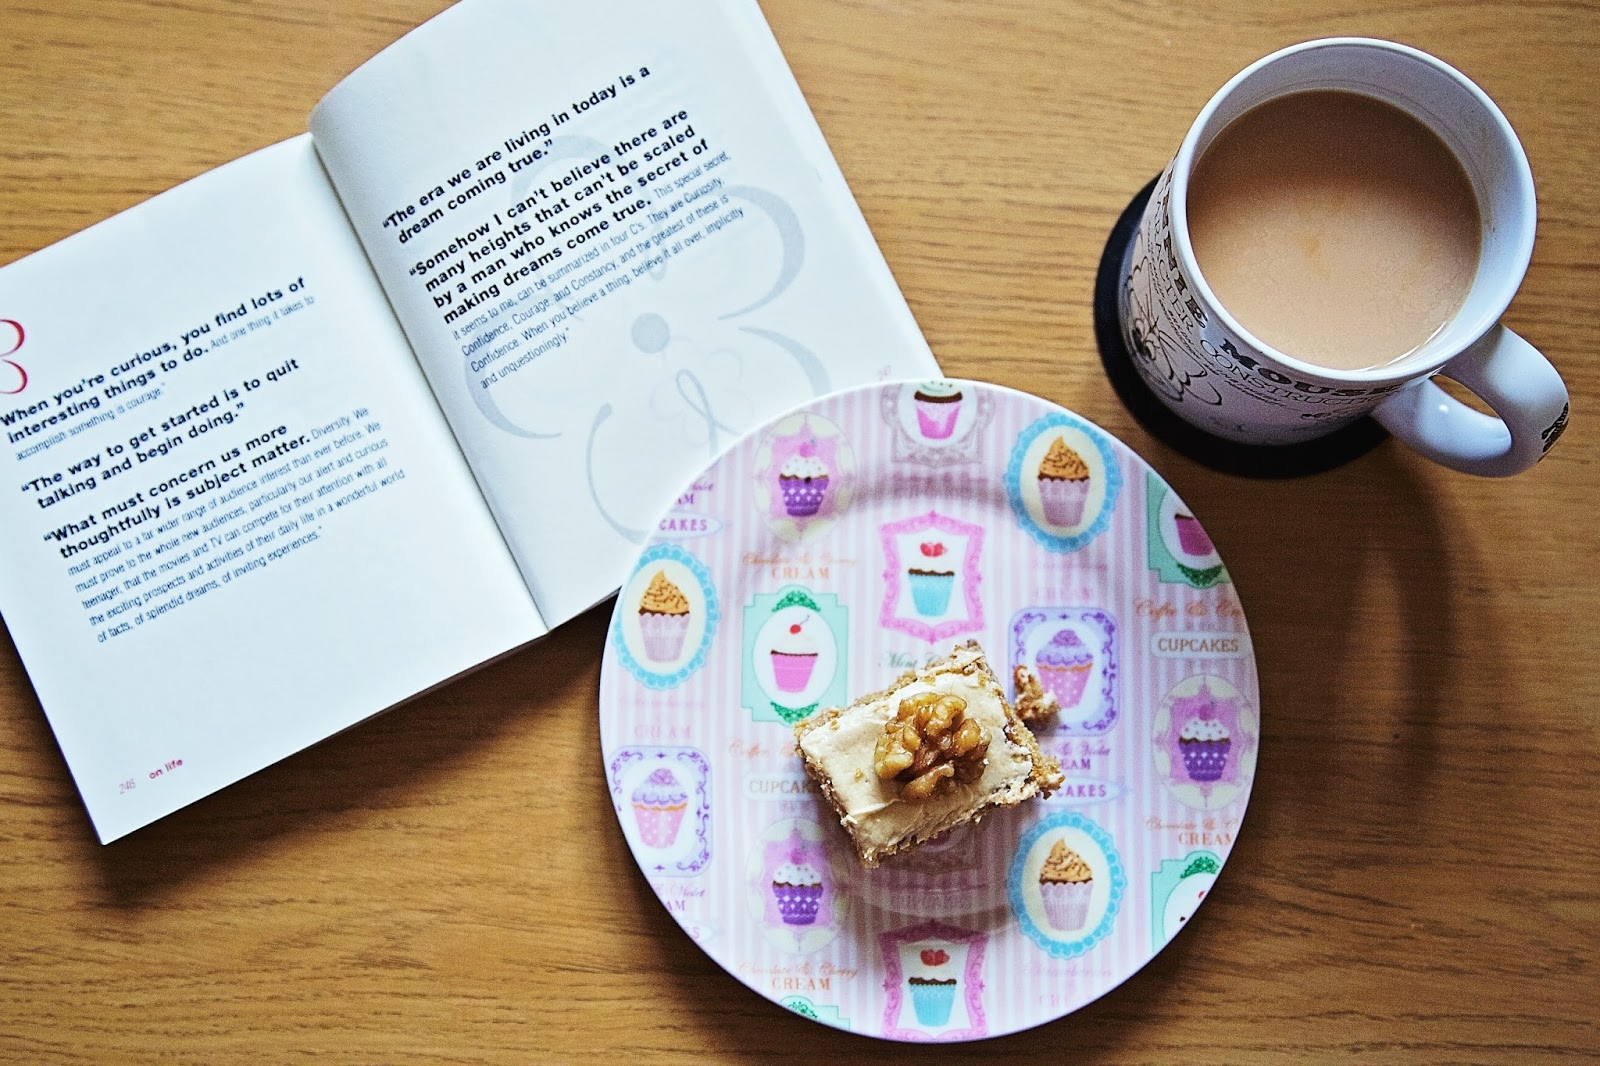 Piece of coffee and walnut traybake with cup of tea and a book.